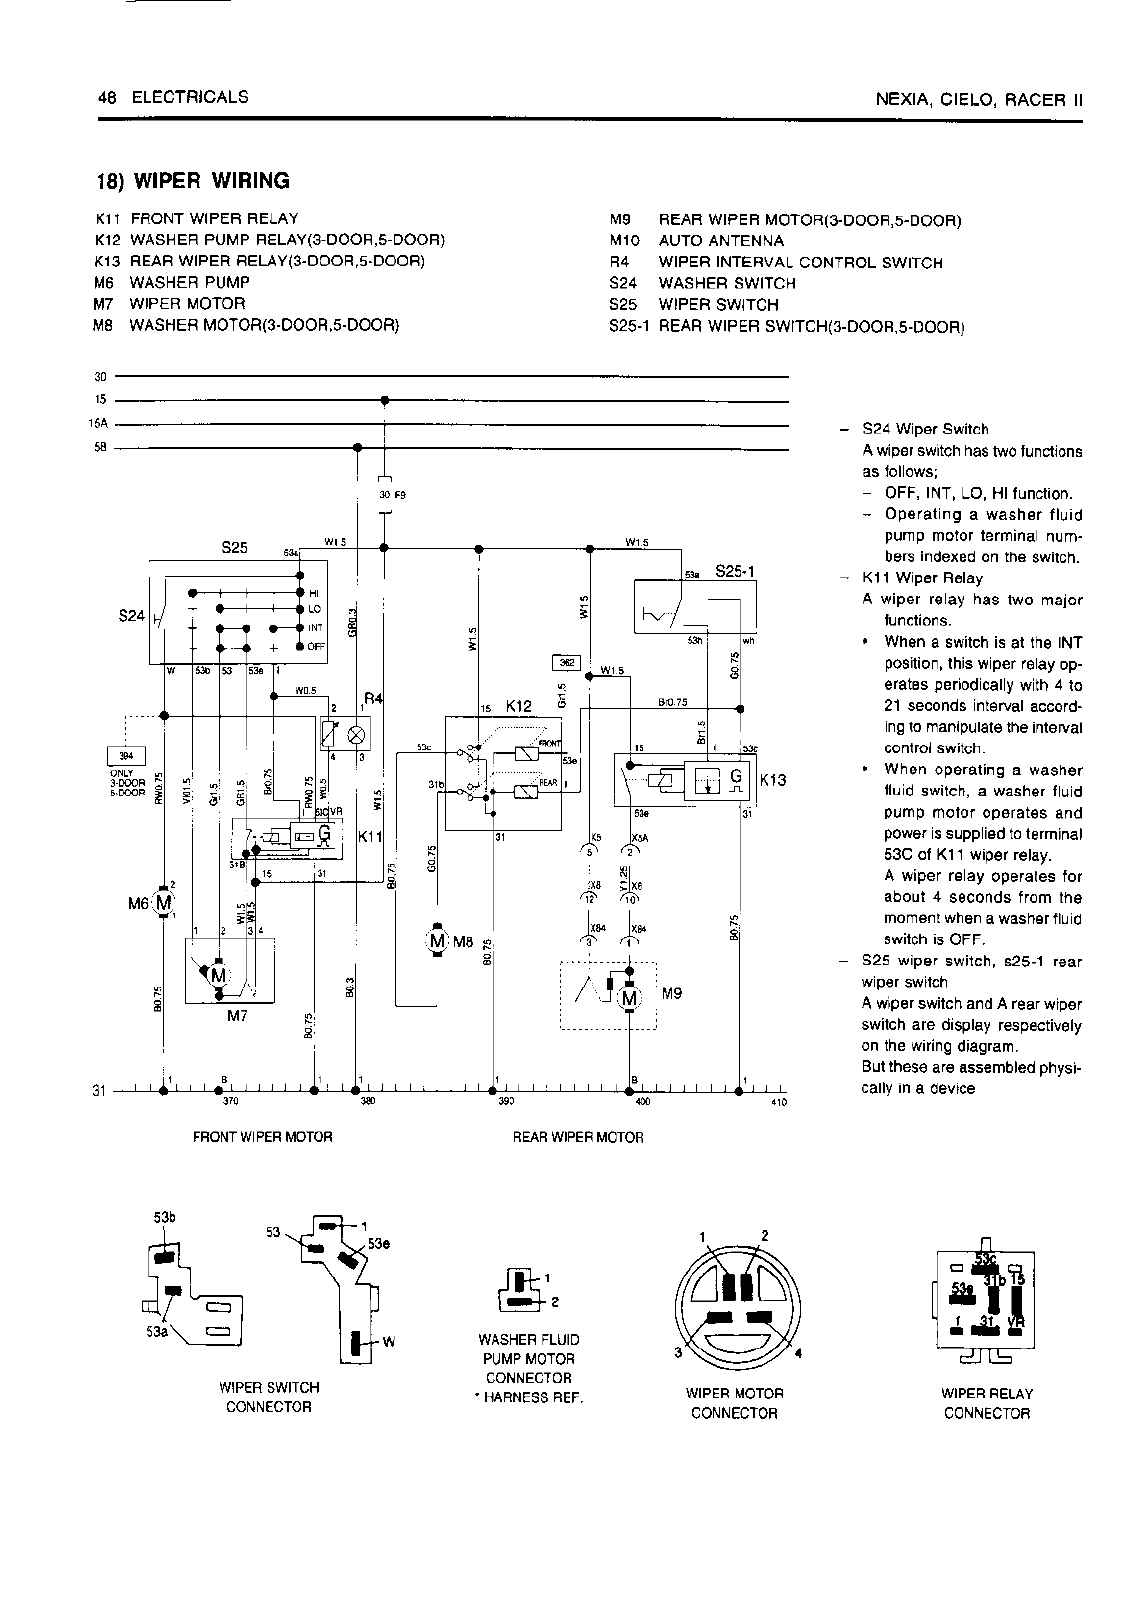 Daewoo Cielo Service Manual Pdf Wiring Library Workshop English See Our Other Nexia Manuals